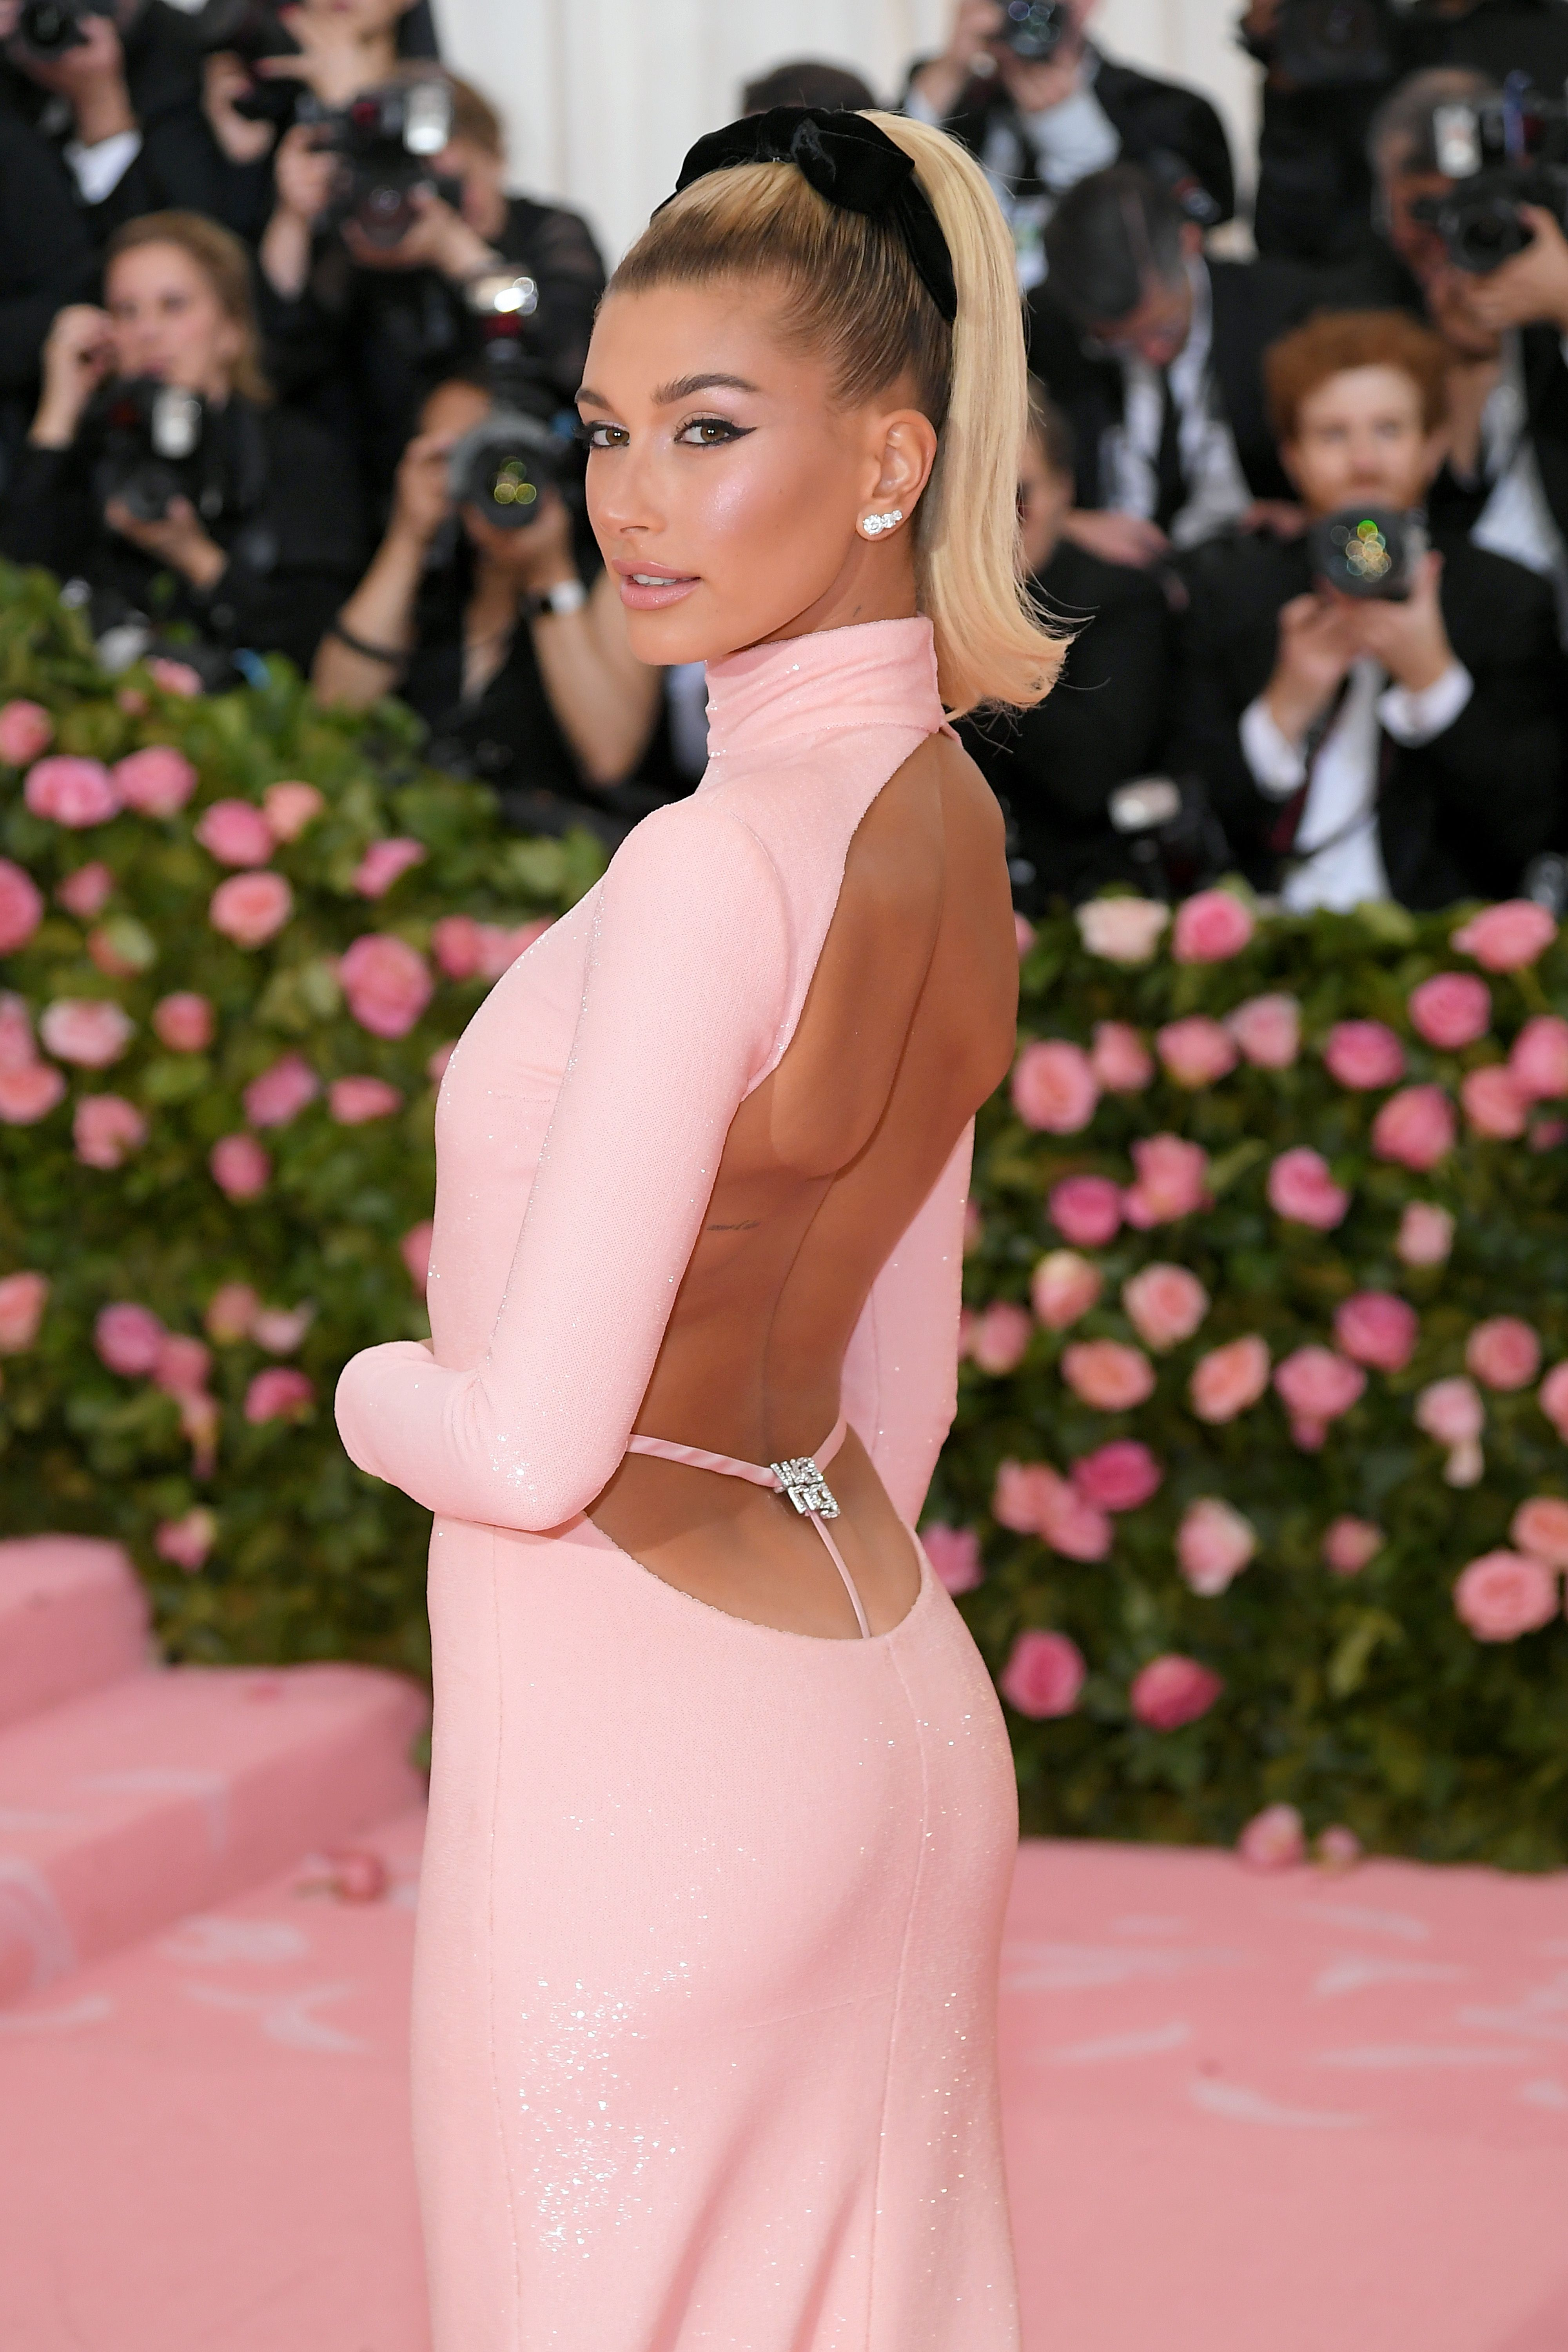 b2cfe07b0abc Hailey Baldwin Wore a Millennial Pink Gown With a Bedazzled Whale Tail Sans  Justin Bieber at the Met Gala